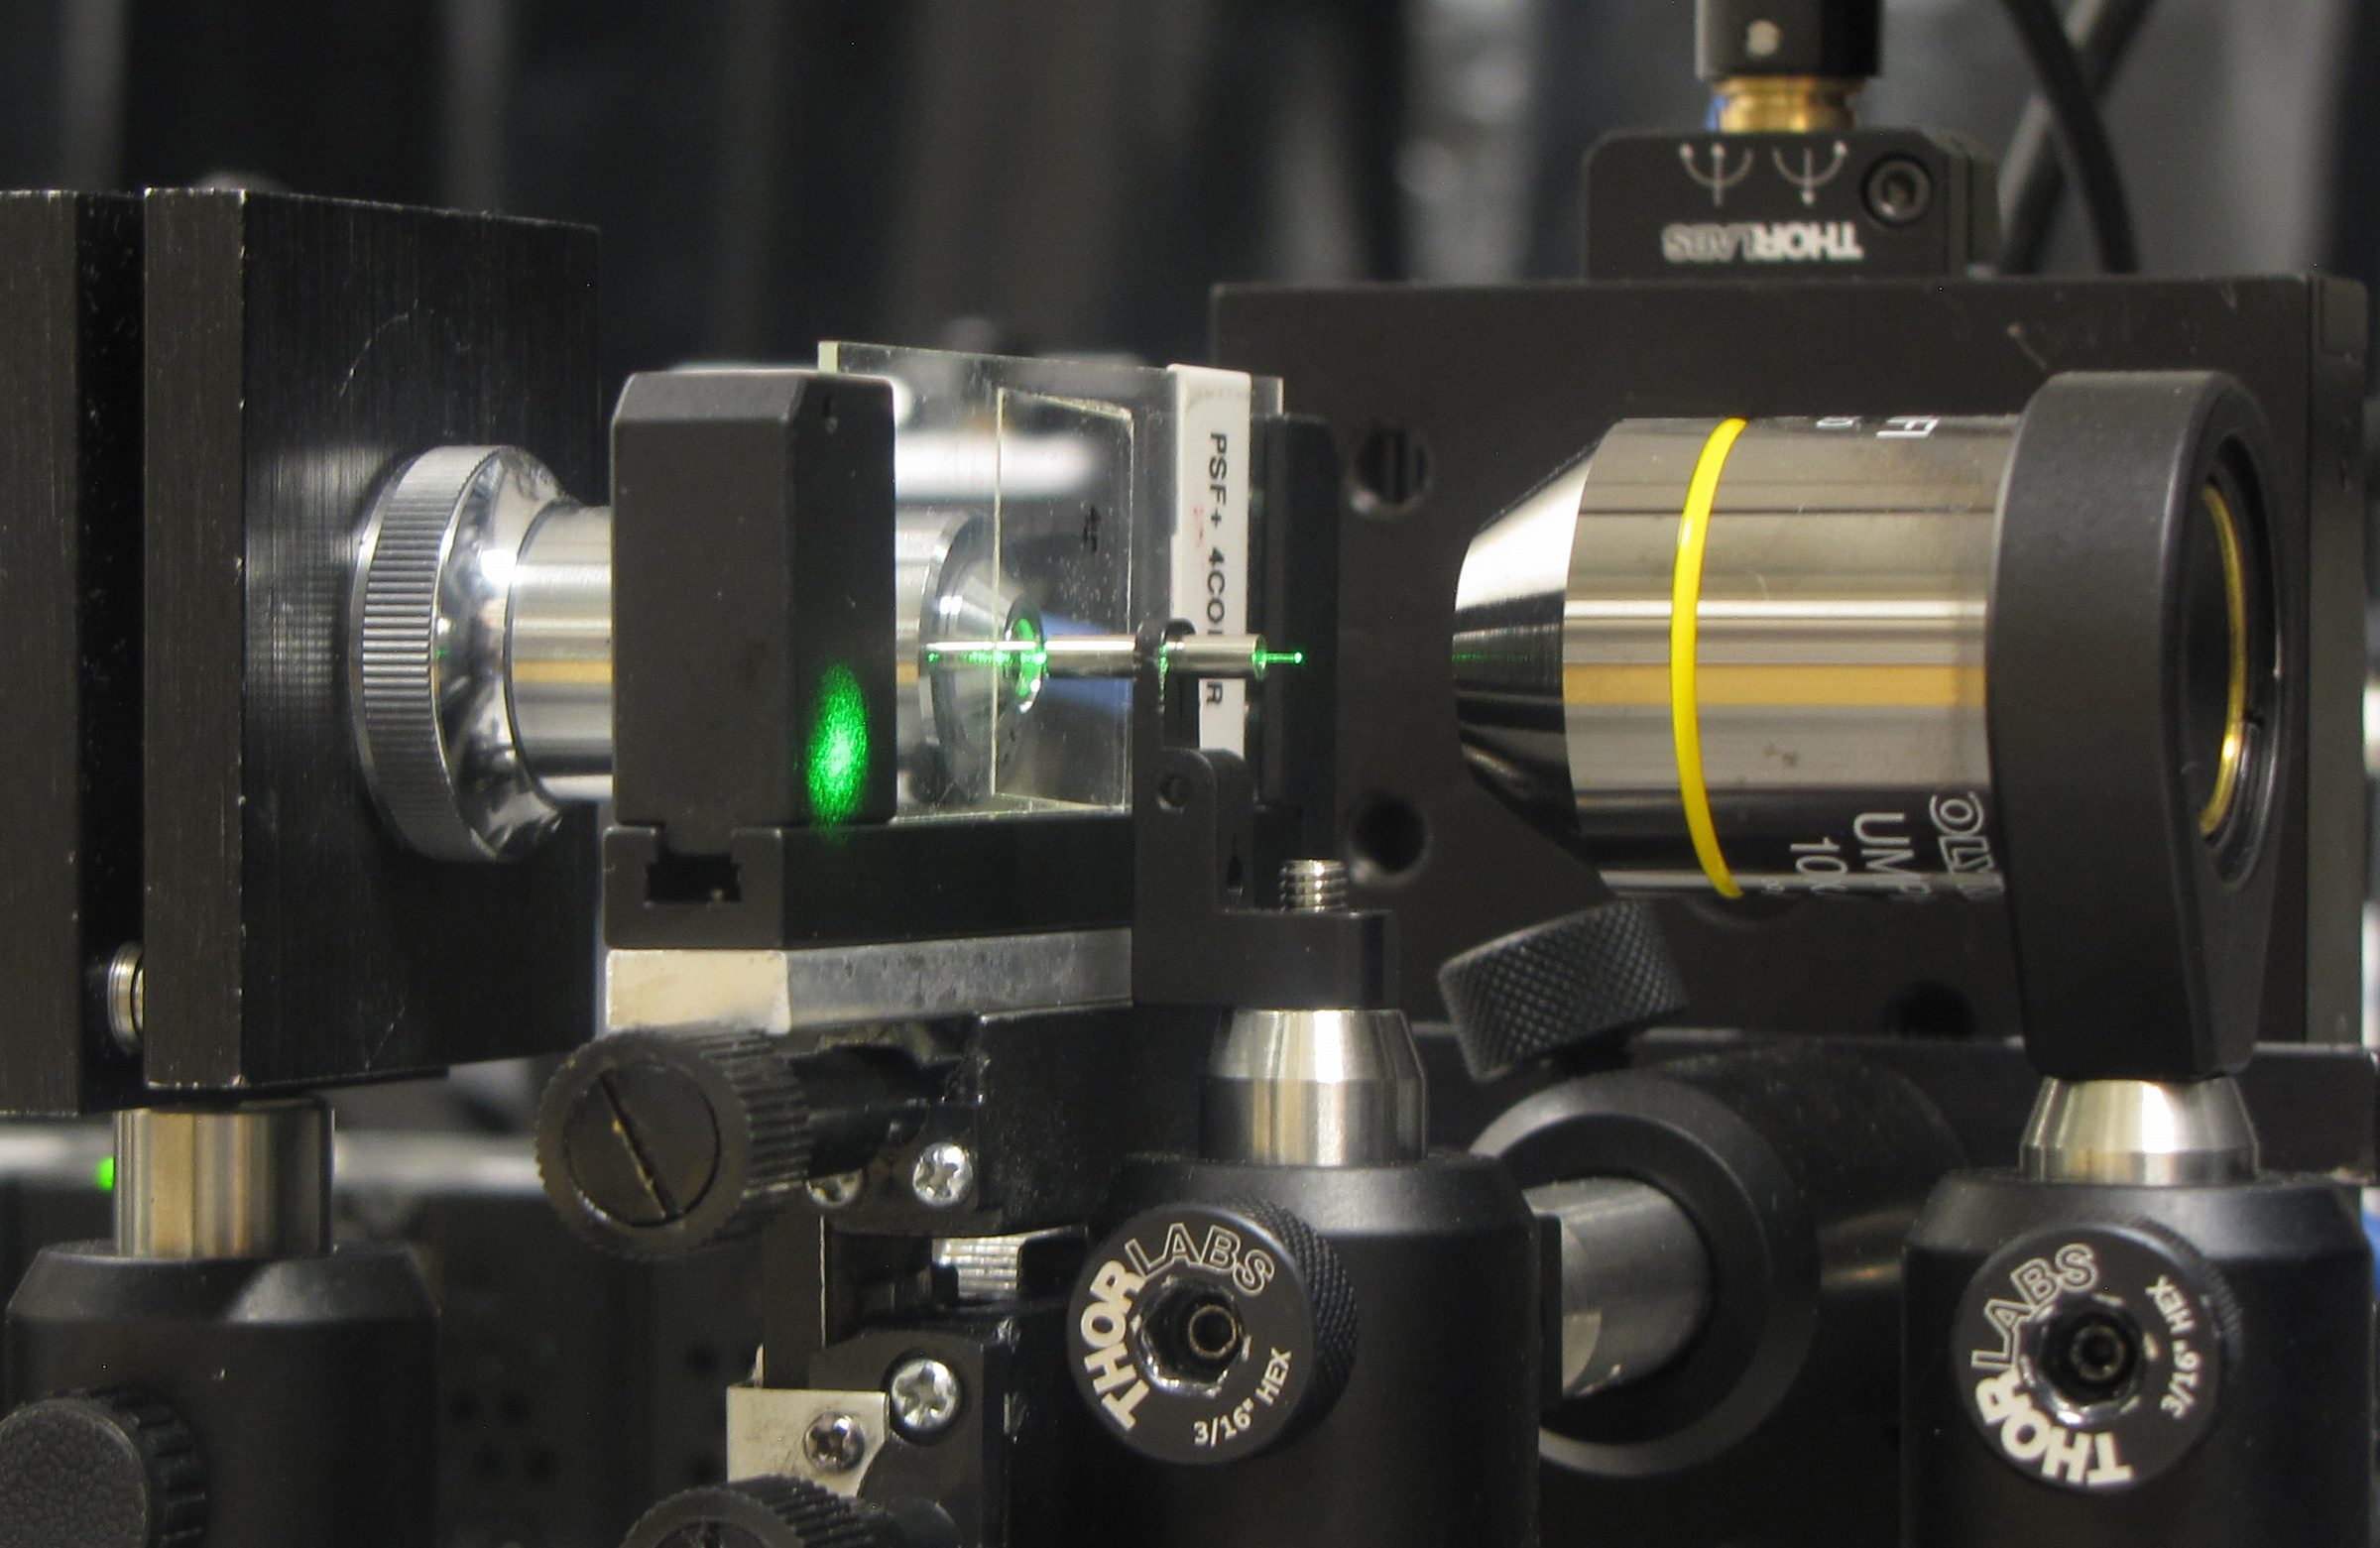 University of Utah engineers have developed a new microscopy method that uses a fine needle or cannula and an LED light to make 3-D images. They hope this new microscope technology, shown here, can be implanted into the brains of mice to show images of cells.